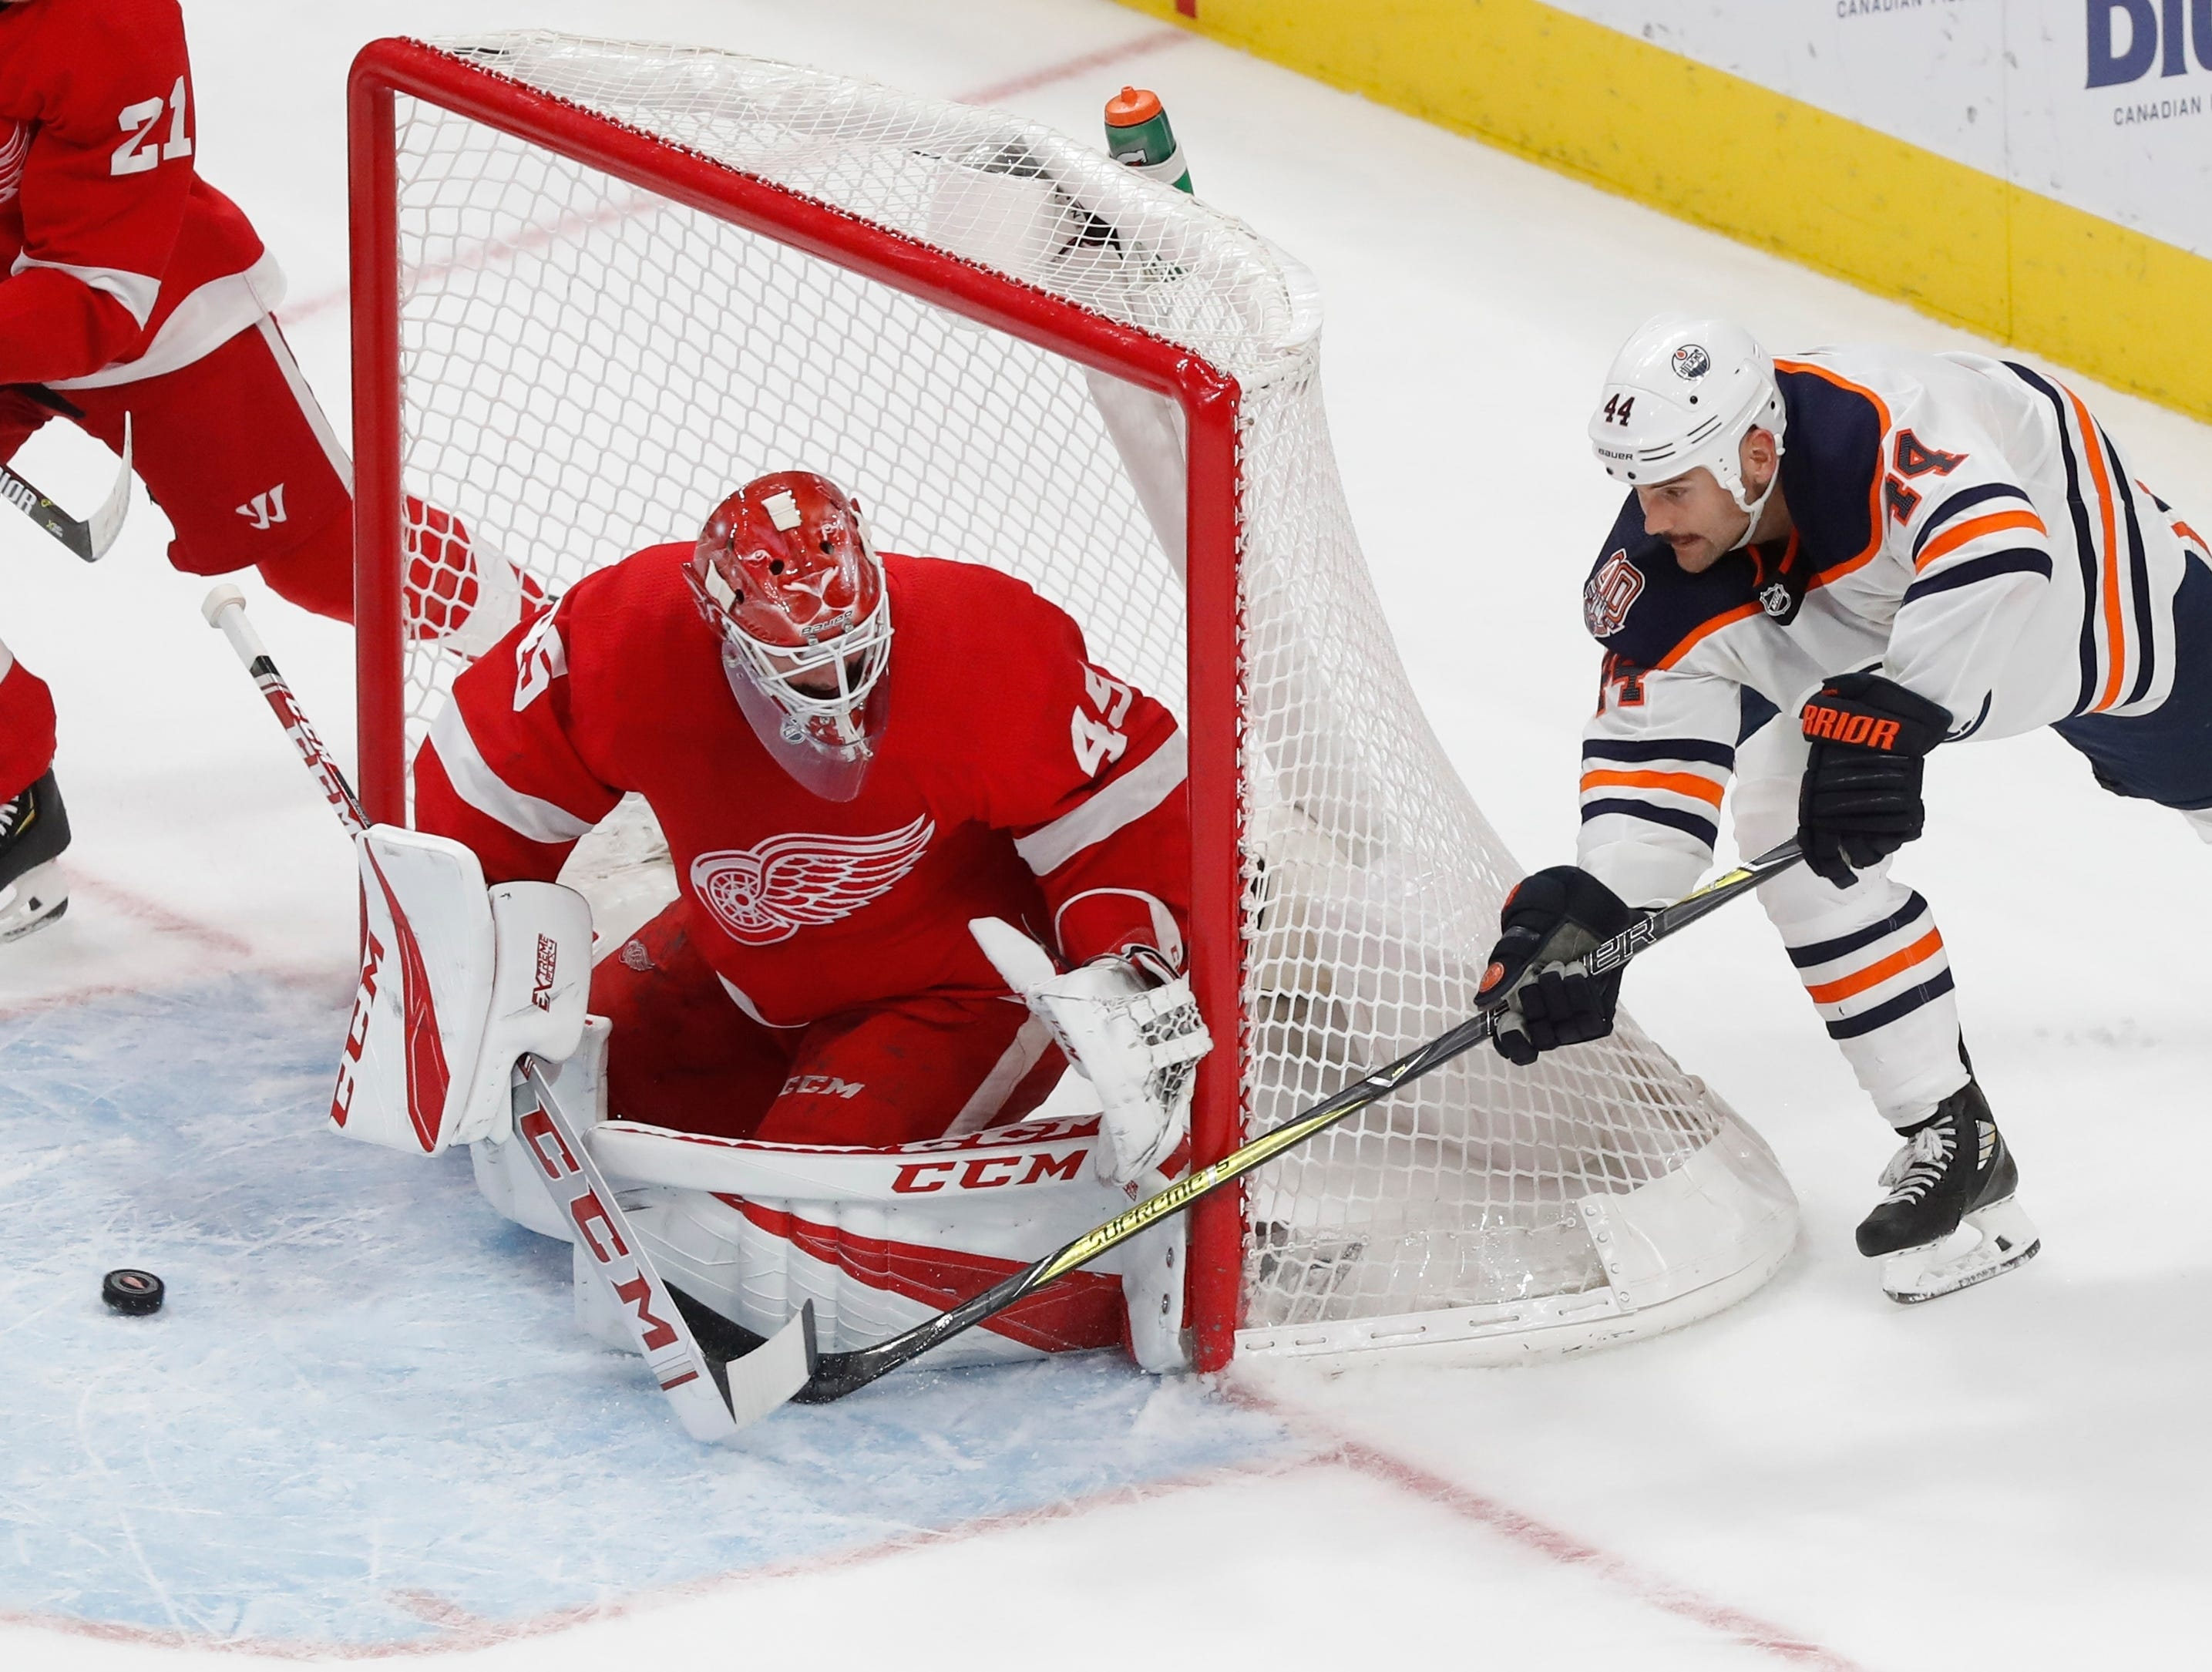 Detroit Red Wings goaltender Jonathan Bernier (45) deflects a shot by Edmonton Oilers right wing Zack Kassian (44) during the third period of an NHL hockey game, Saturday, Nov. 3, 2018, in Detroit. Edmonton won, 4-3. (AP Photo/Carlos Osorio)